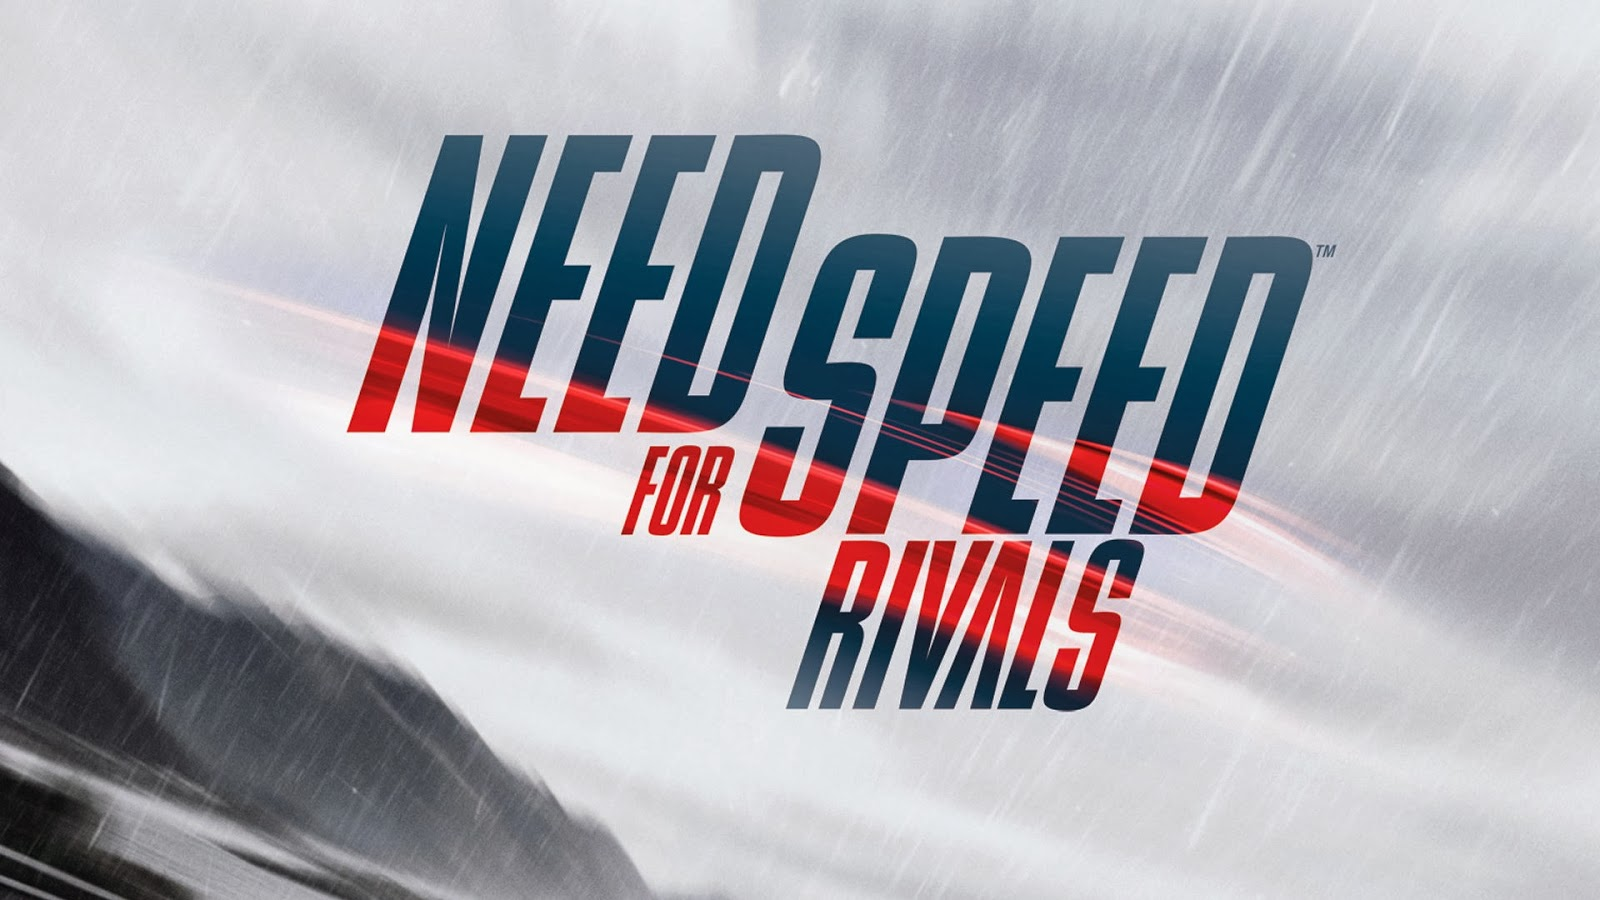 Wallpaper Need For Speed Rivals